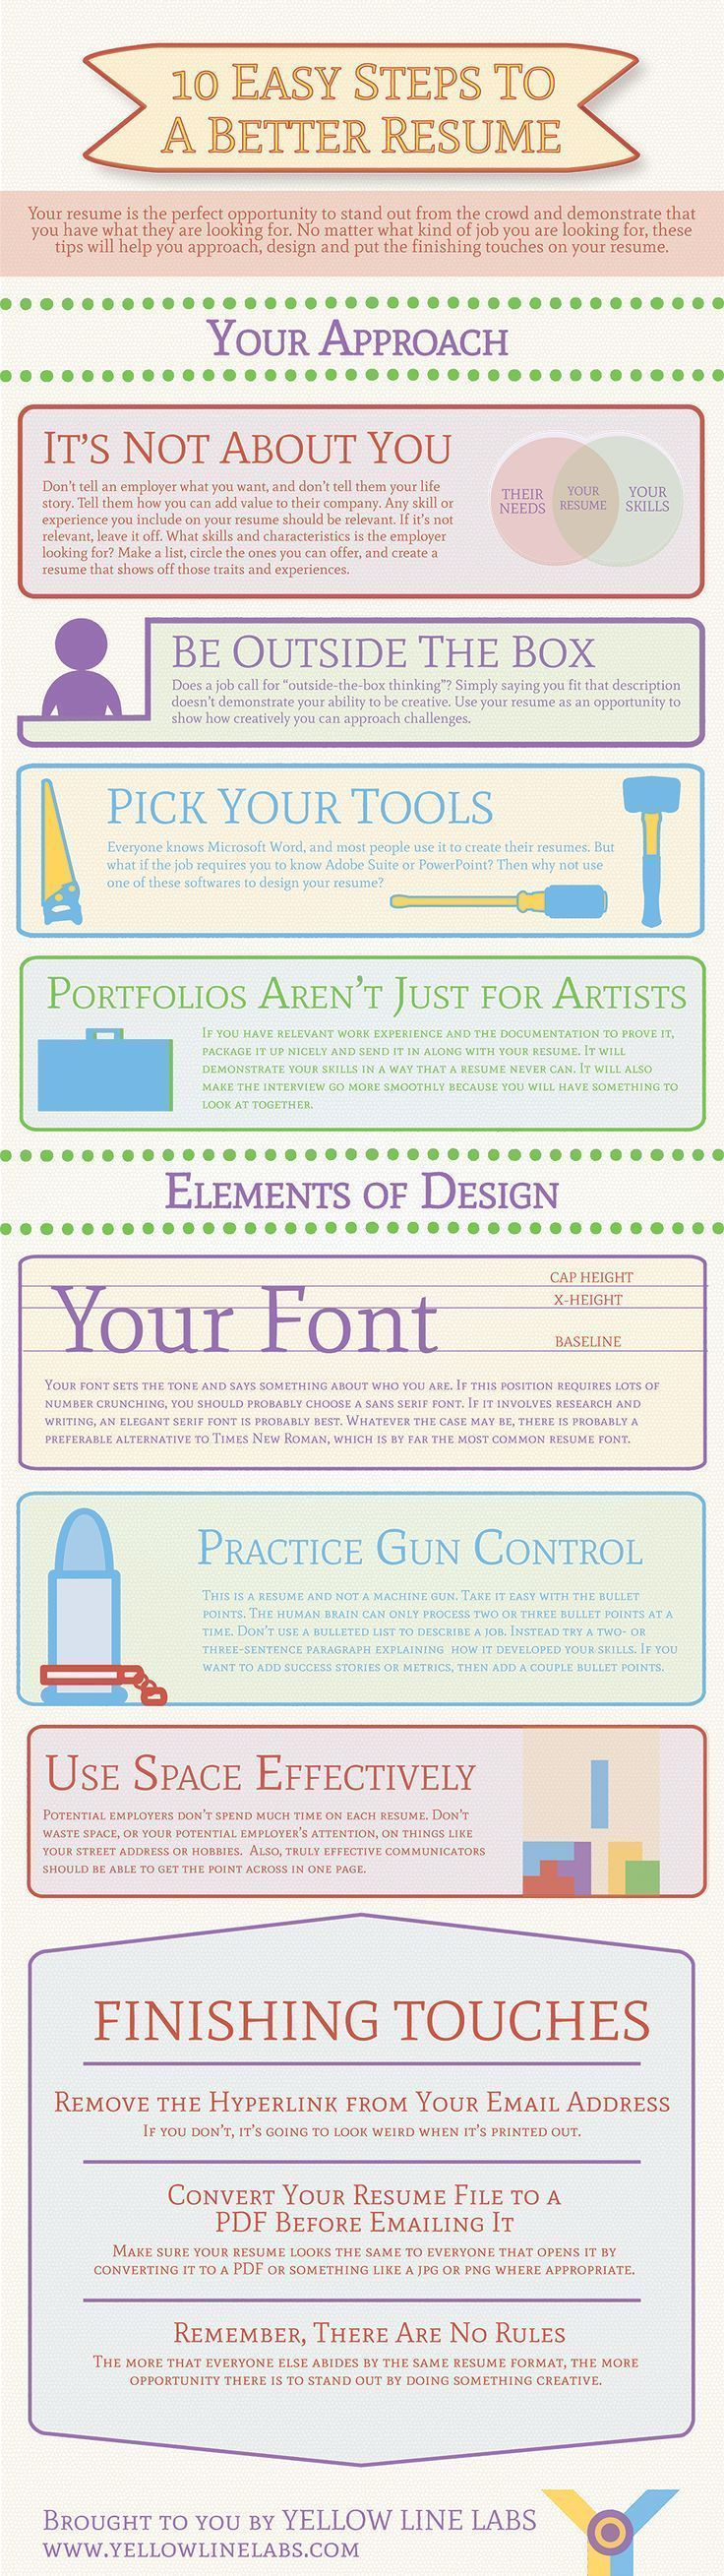 What Font To Use On Resume 29 Best Interview & Resume Tips And Advice Images On Pinterest .